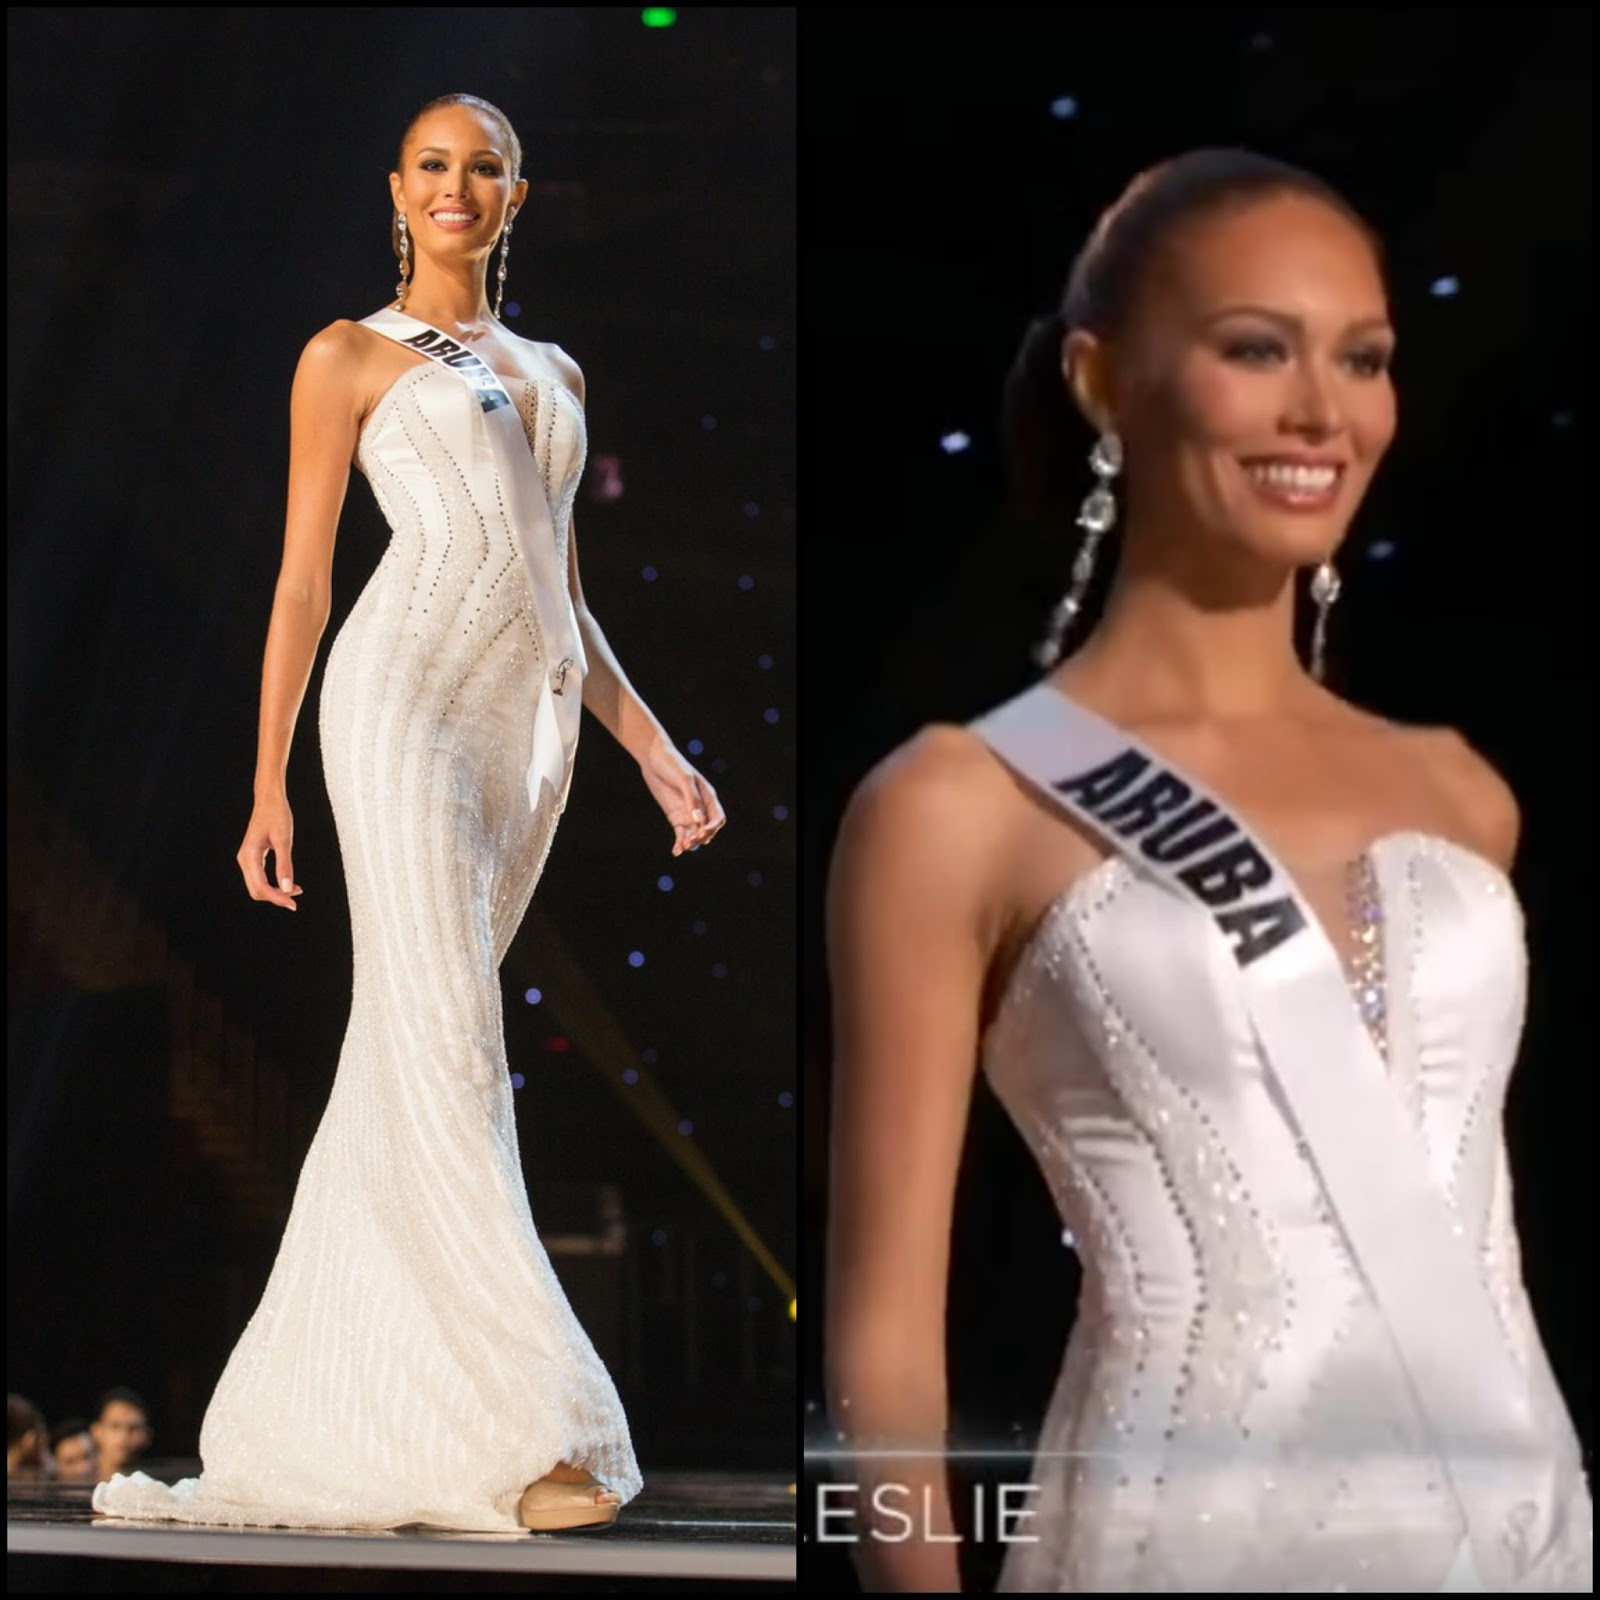 2018 Miss Universe Evening Gown